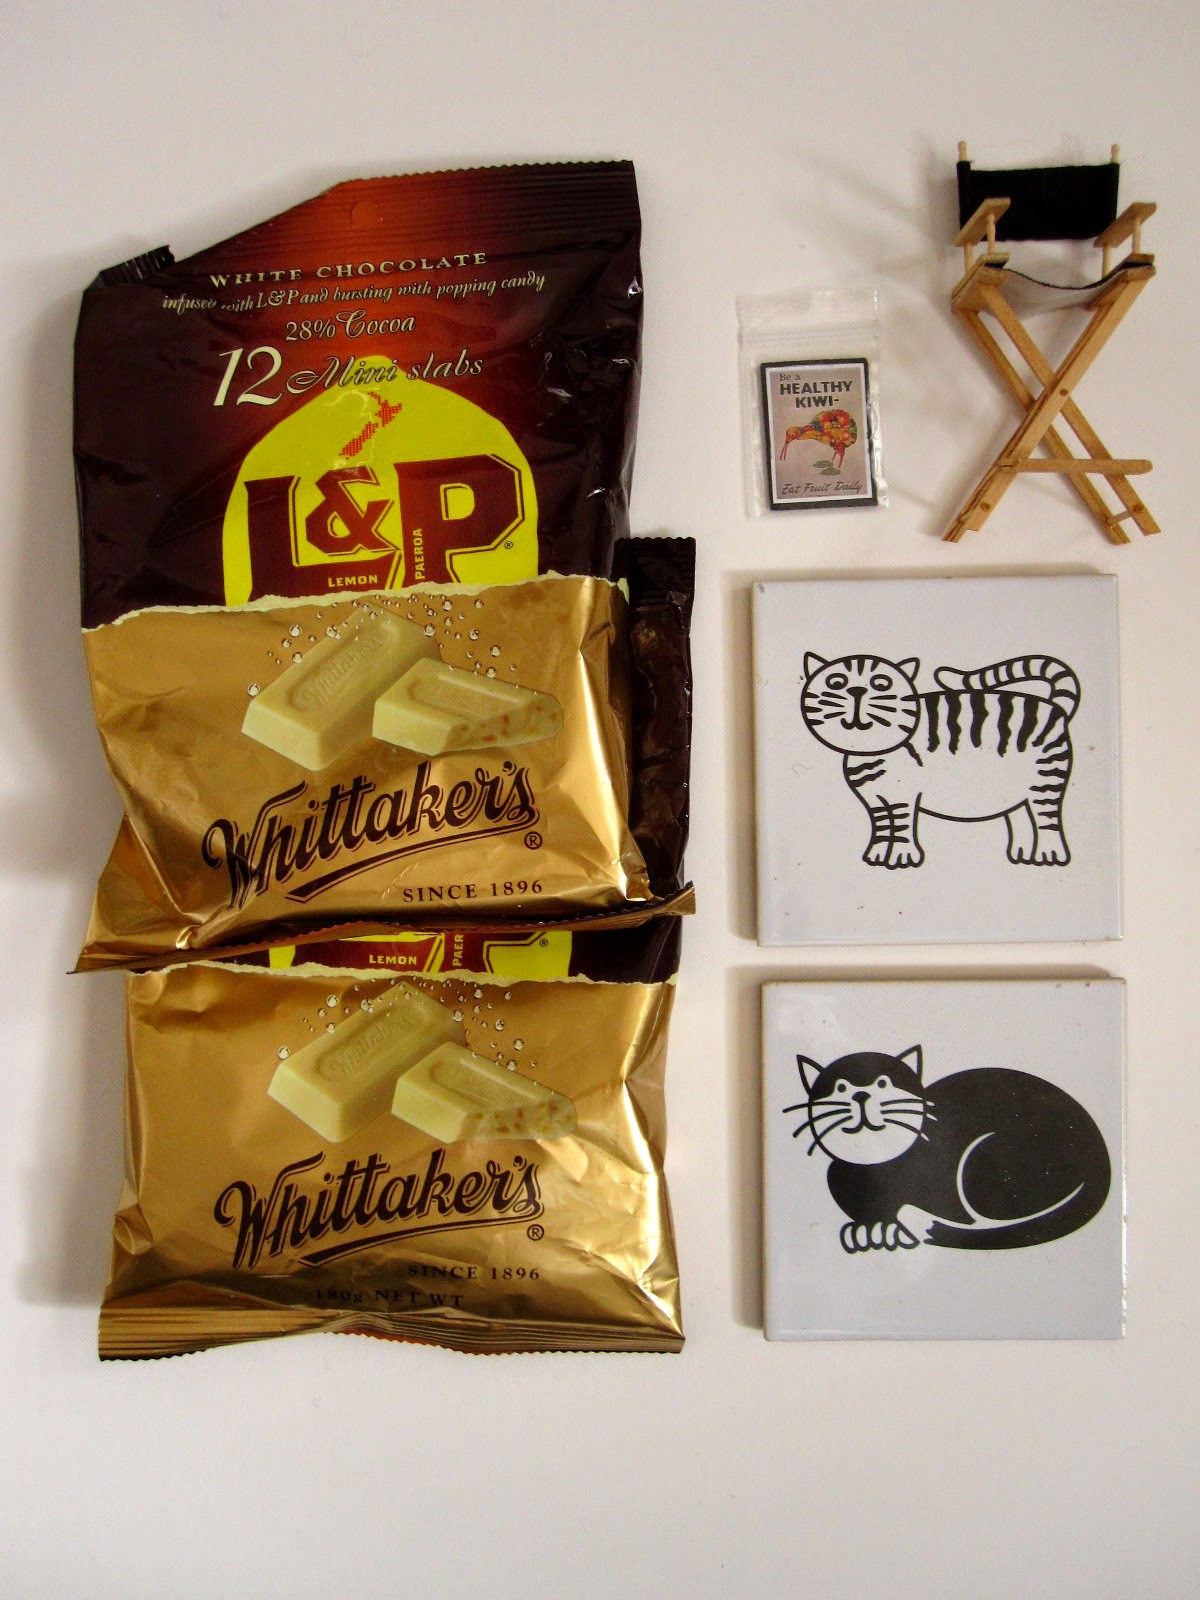 Two bags of Whittaker's L&P mini bars, two black and white cat coasters, a miniature director's chair and a miniature 'Be a healthy kiwi' poster.